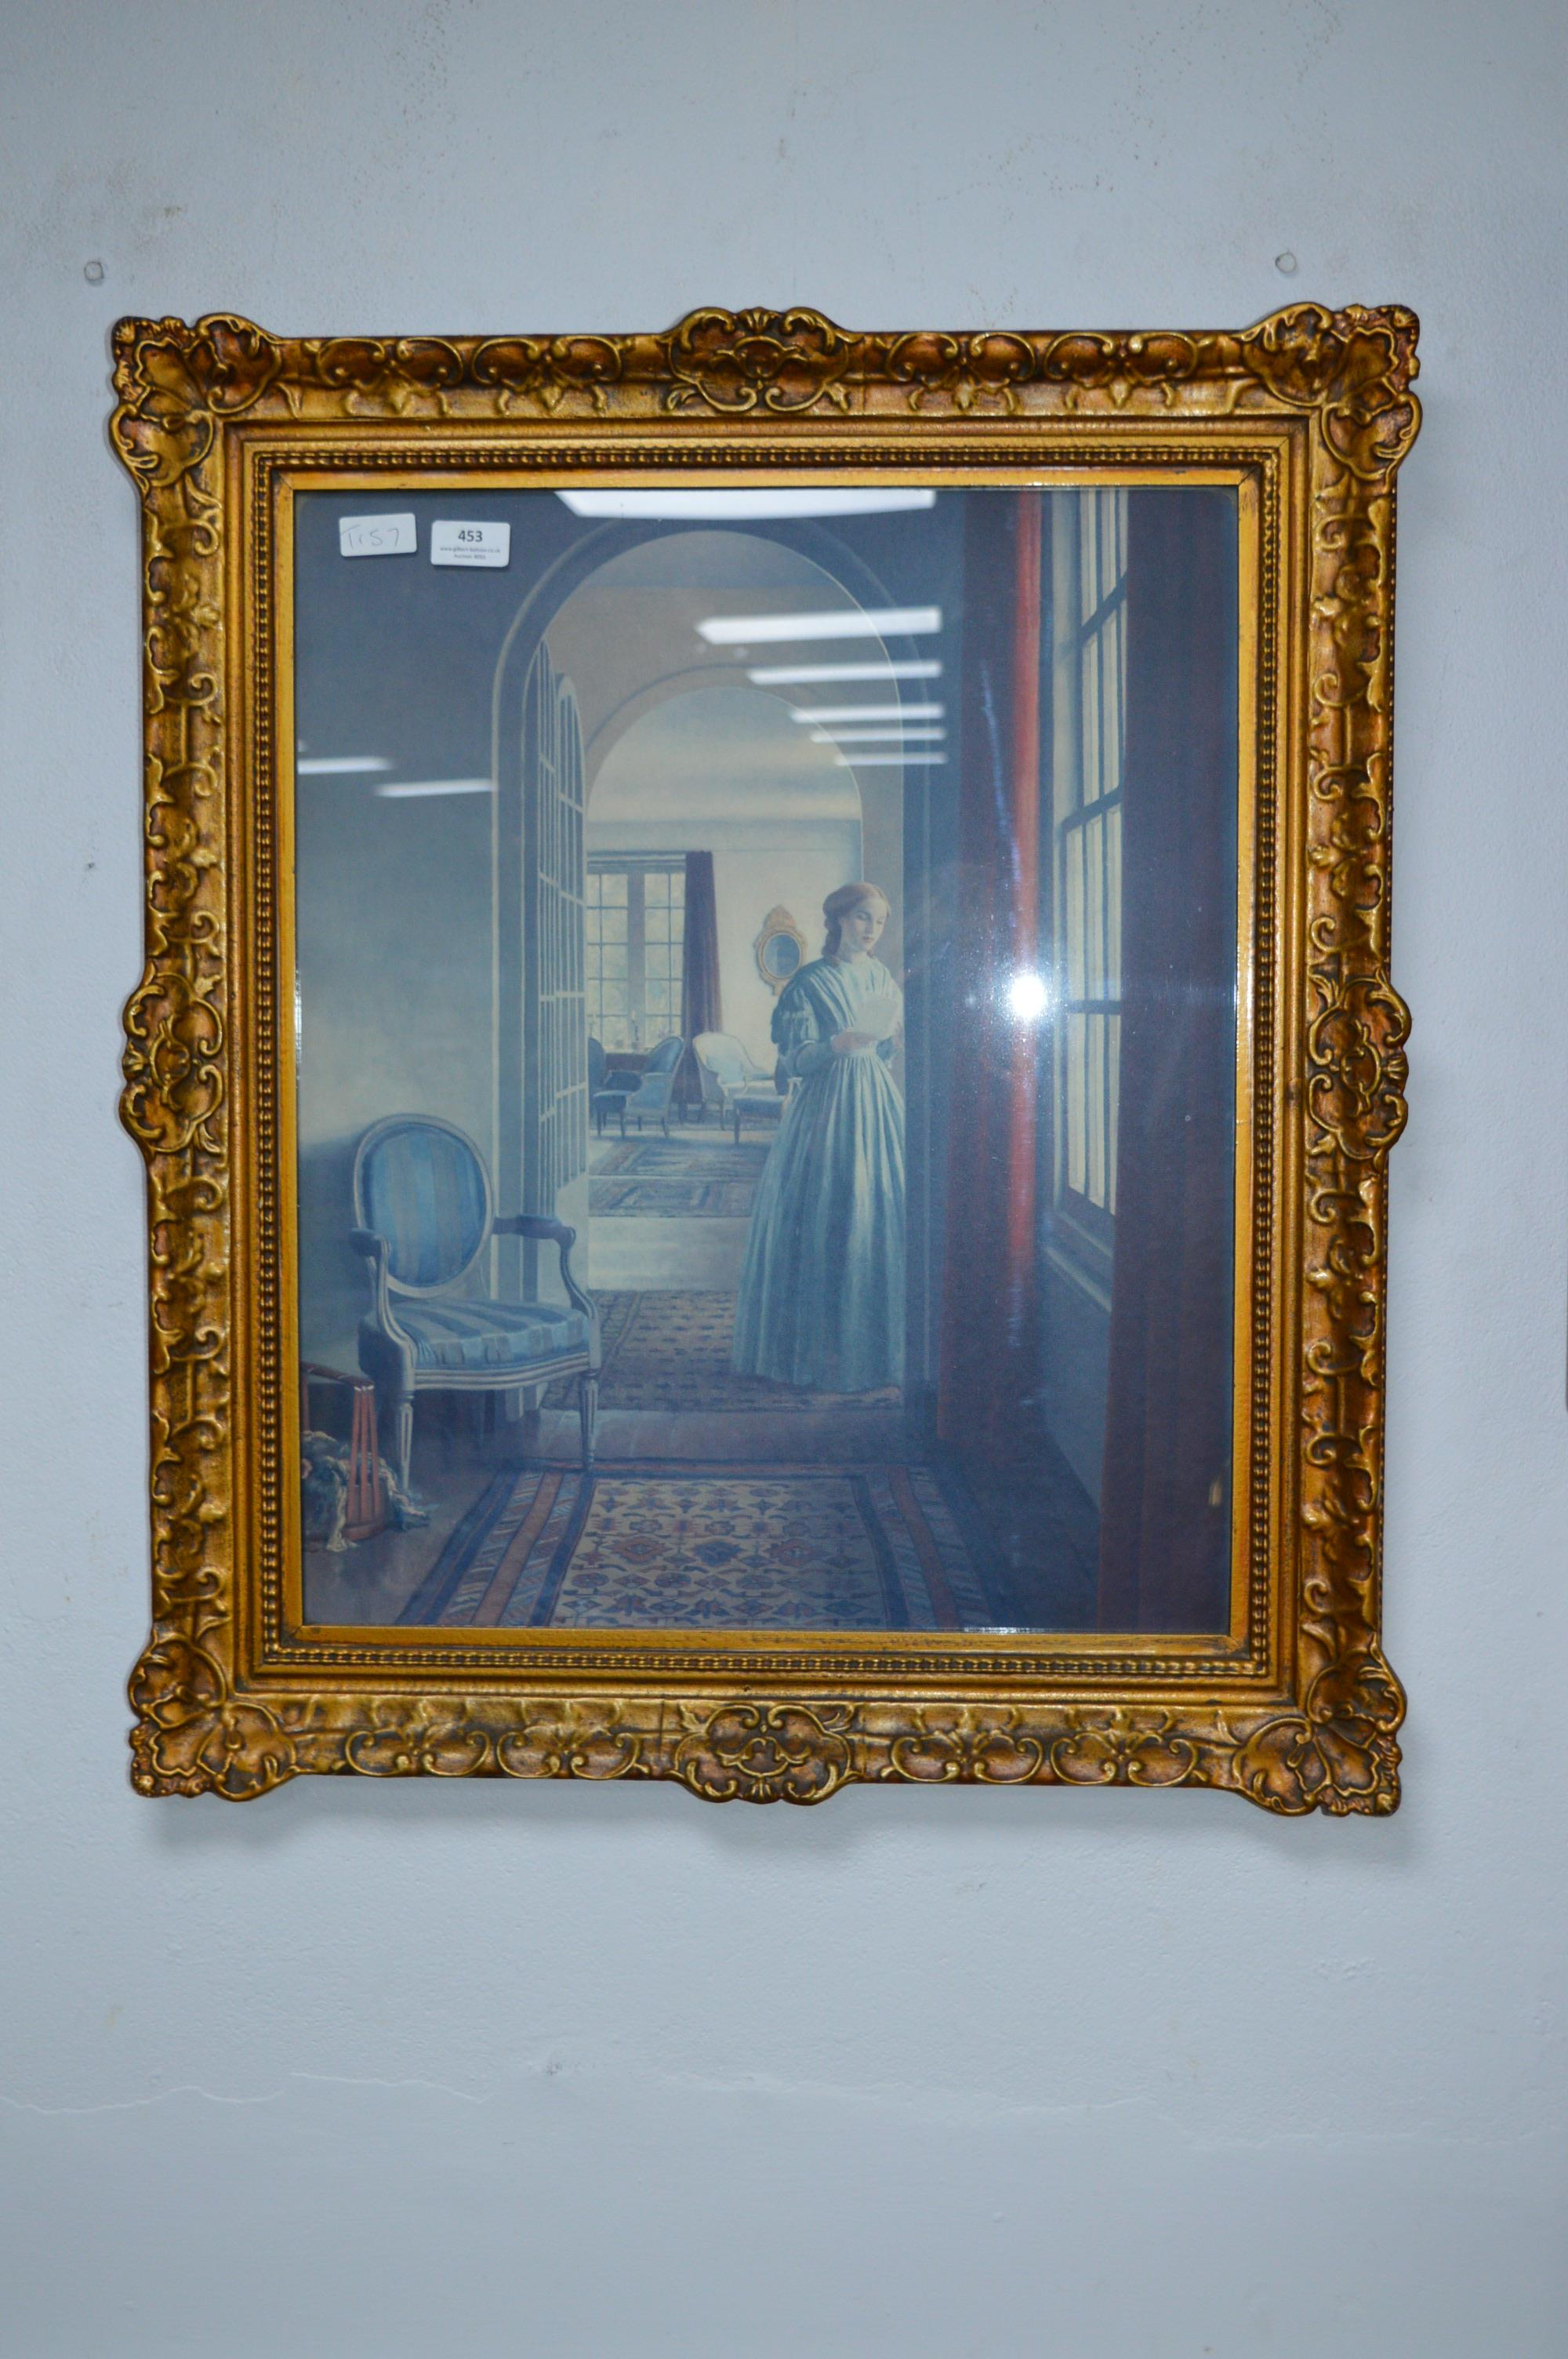 Lot 453 - Interior Study in Gilt Frame